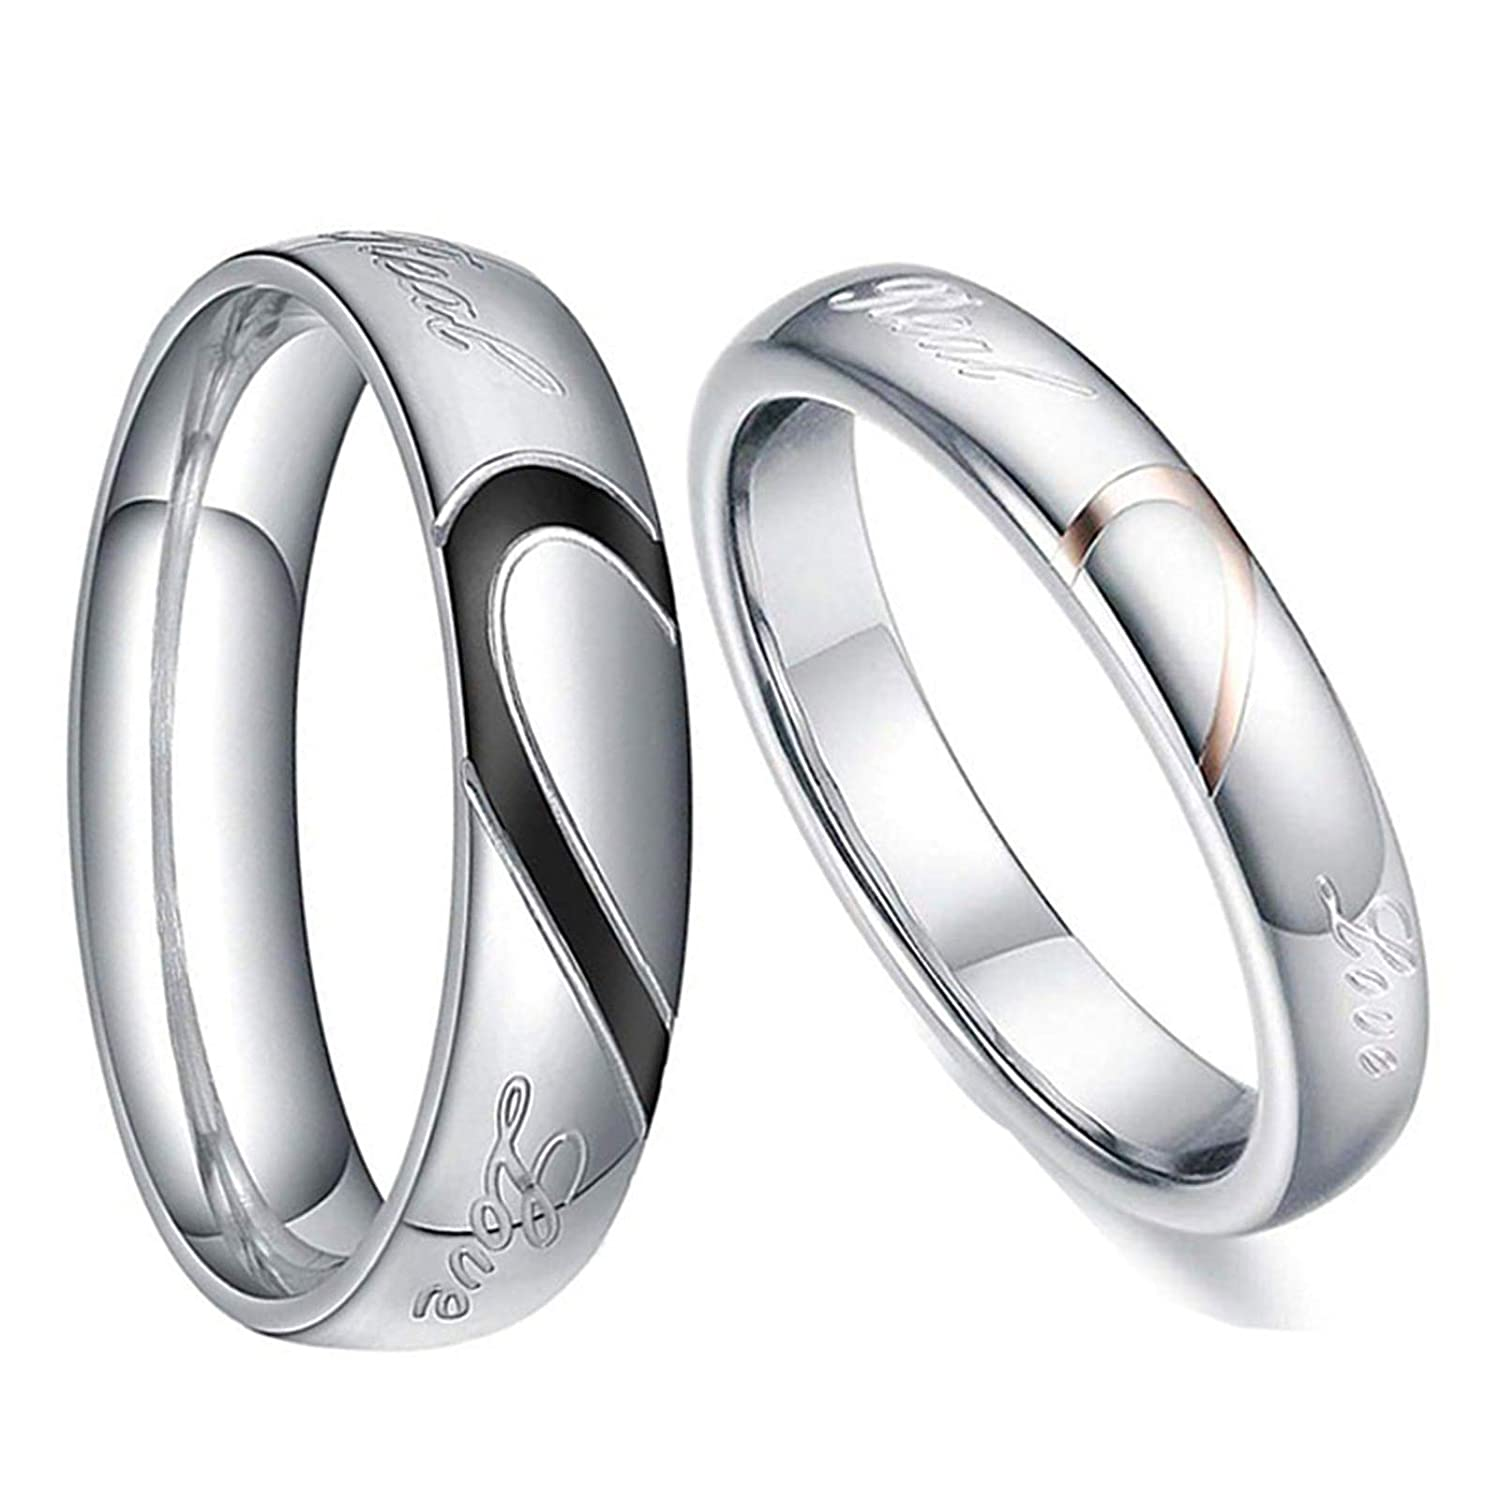 KnSam 4MM Couple Rings Stainless Steel Puzzle Heart Love Ring Black Rose Gold Women Size 7 & Men Size 13